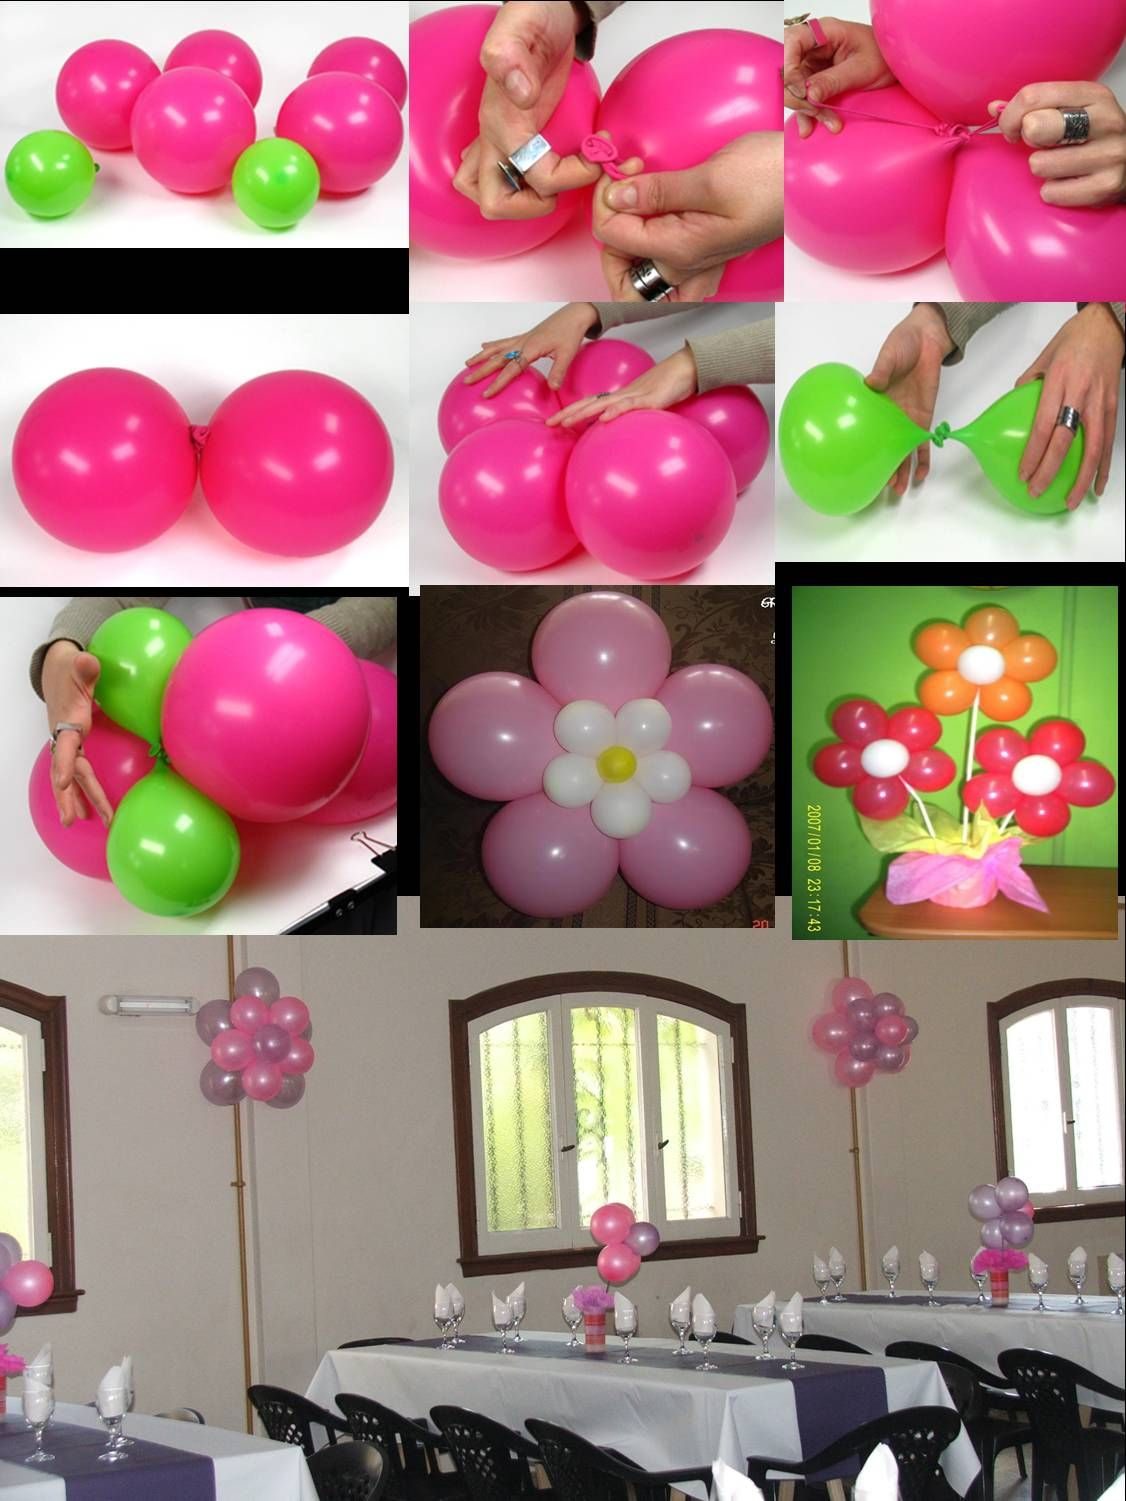 Como decorar un salon de fiestas con flores de globos for Decoraciones para decorar